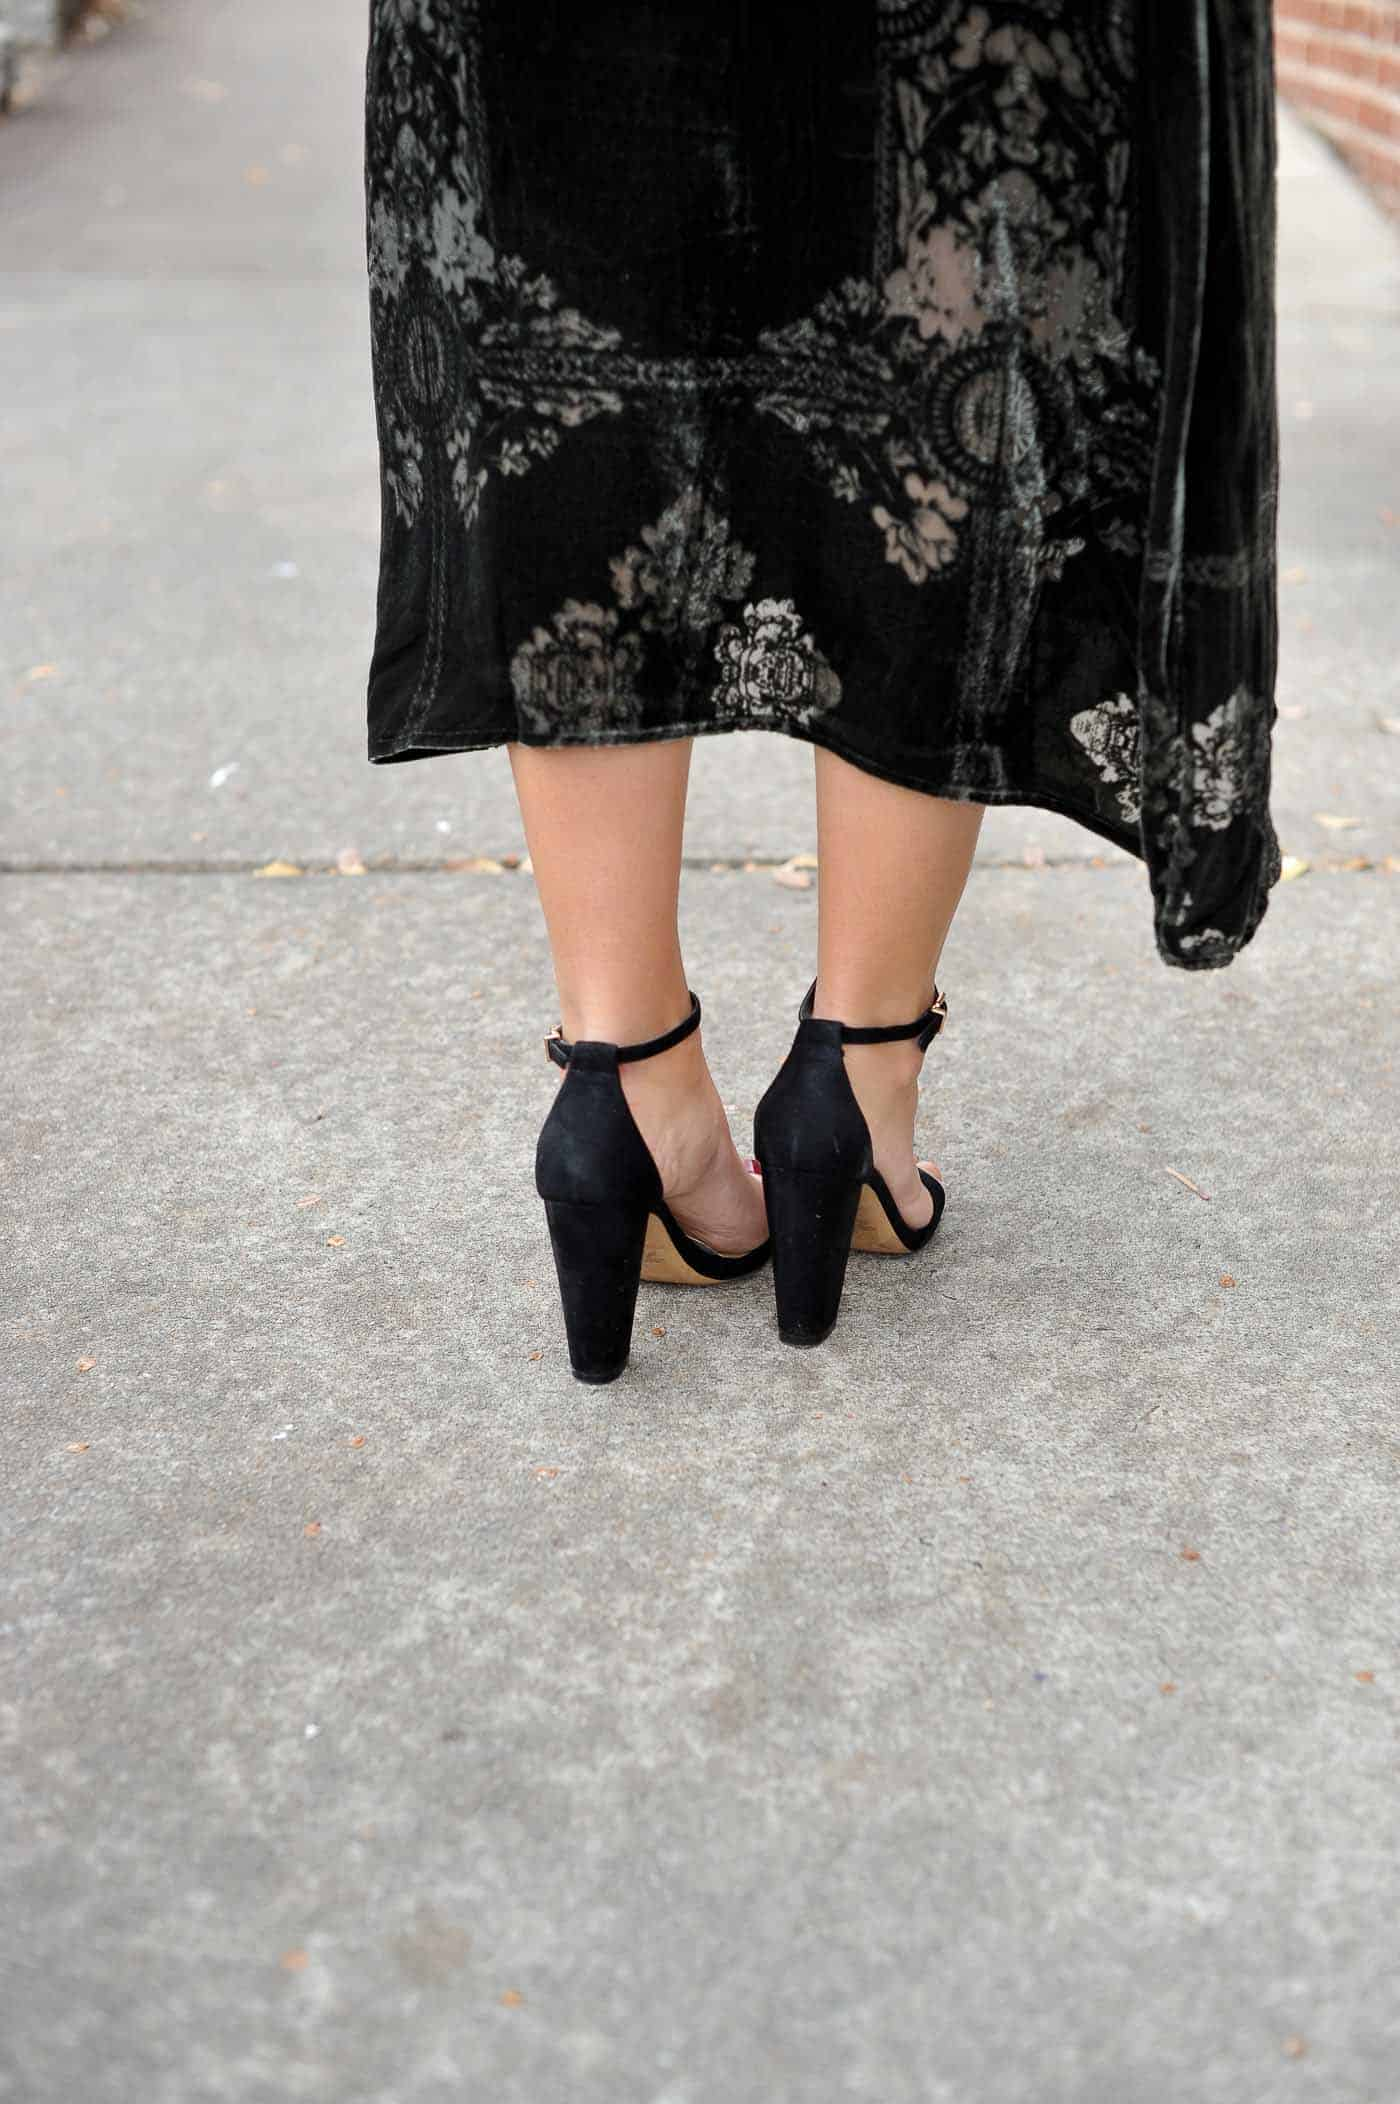 black heels, shoe shot, pretty shoes for fall - My Style Vita @mystylevita